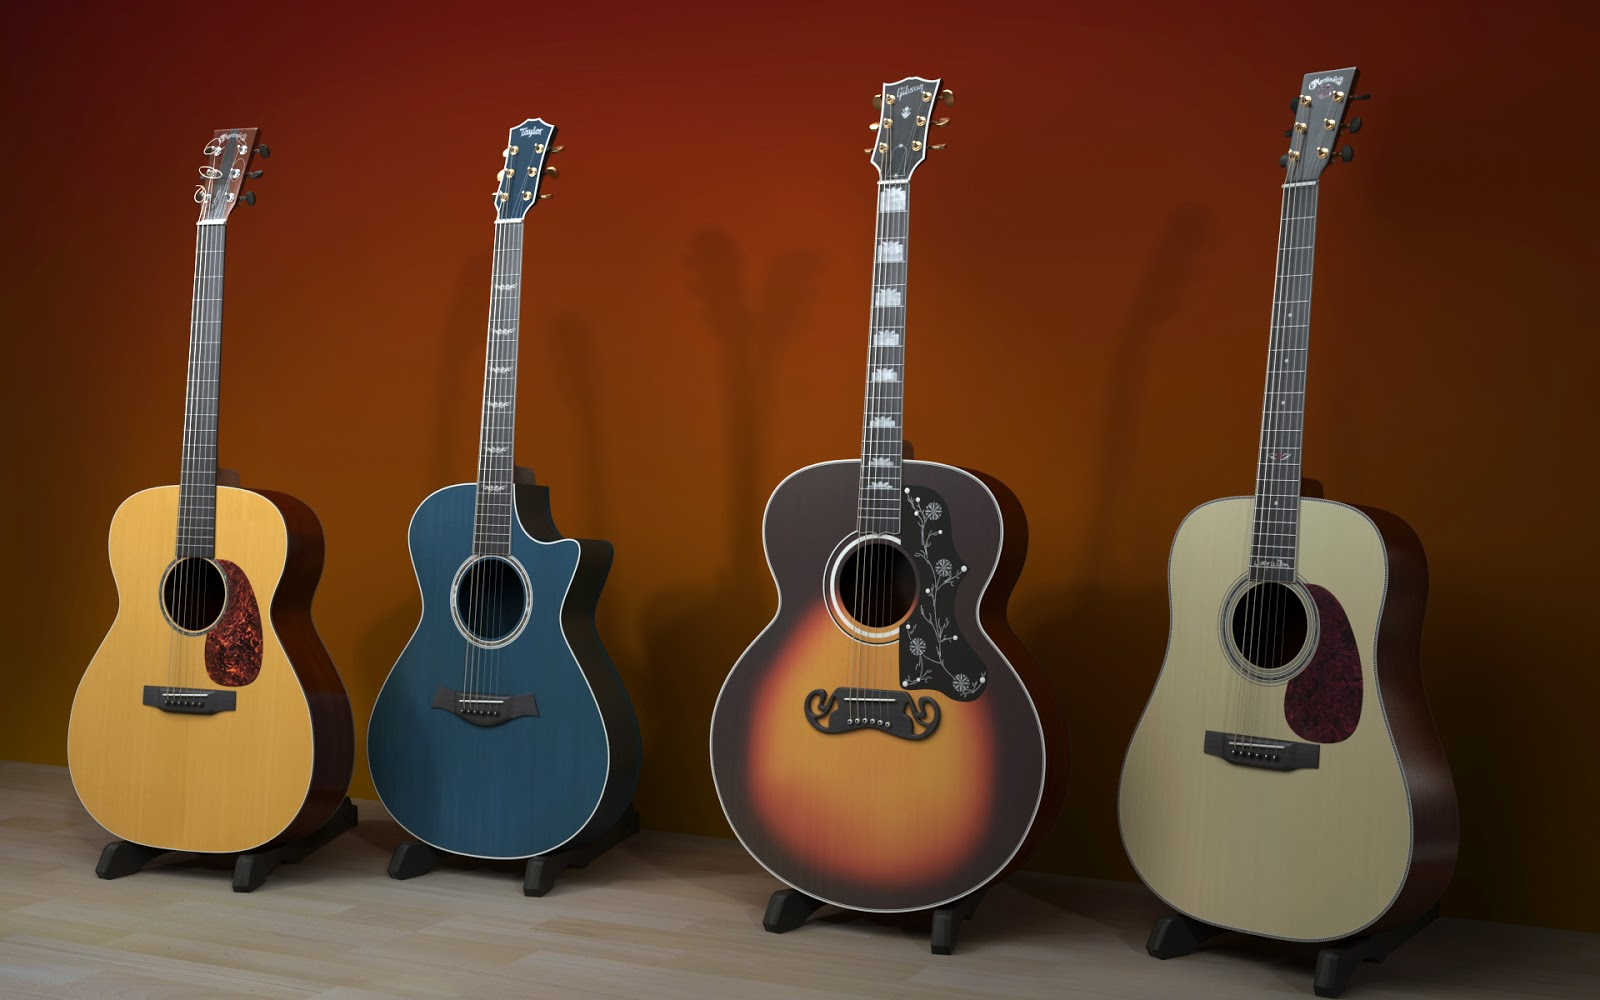 Hd Wallpapers Ohoomi Guitar Musical Instruments New Hd Images Free Download